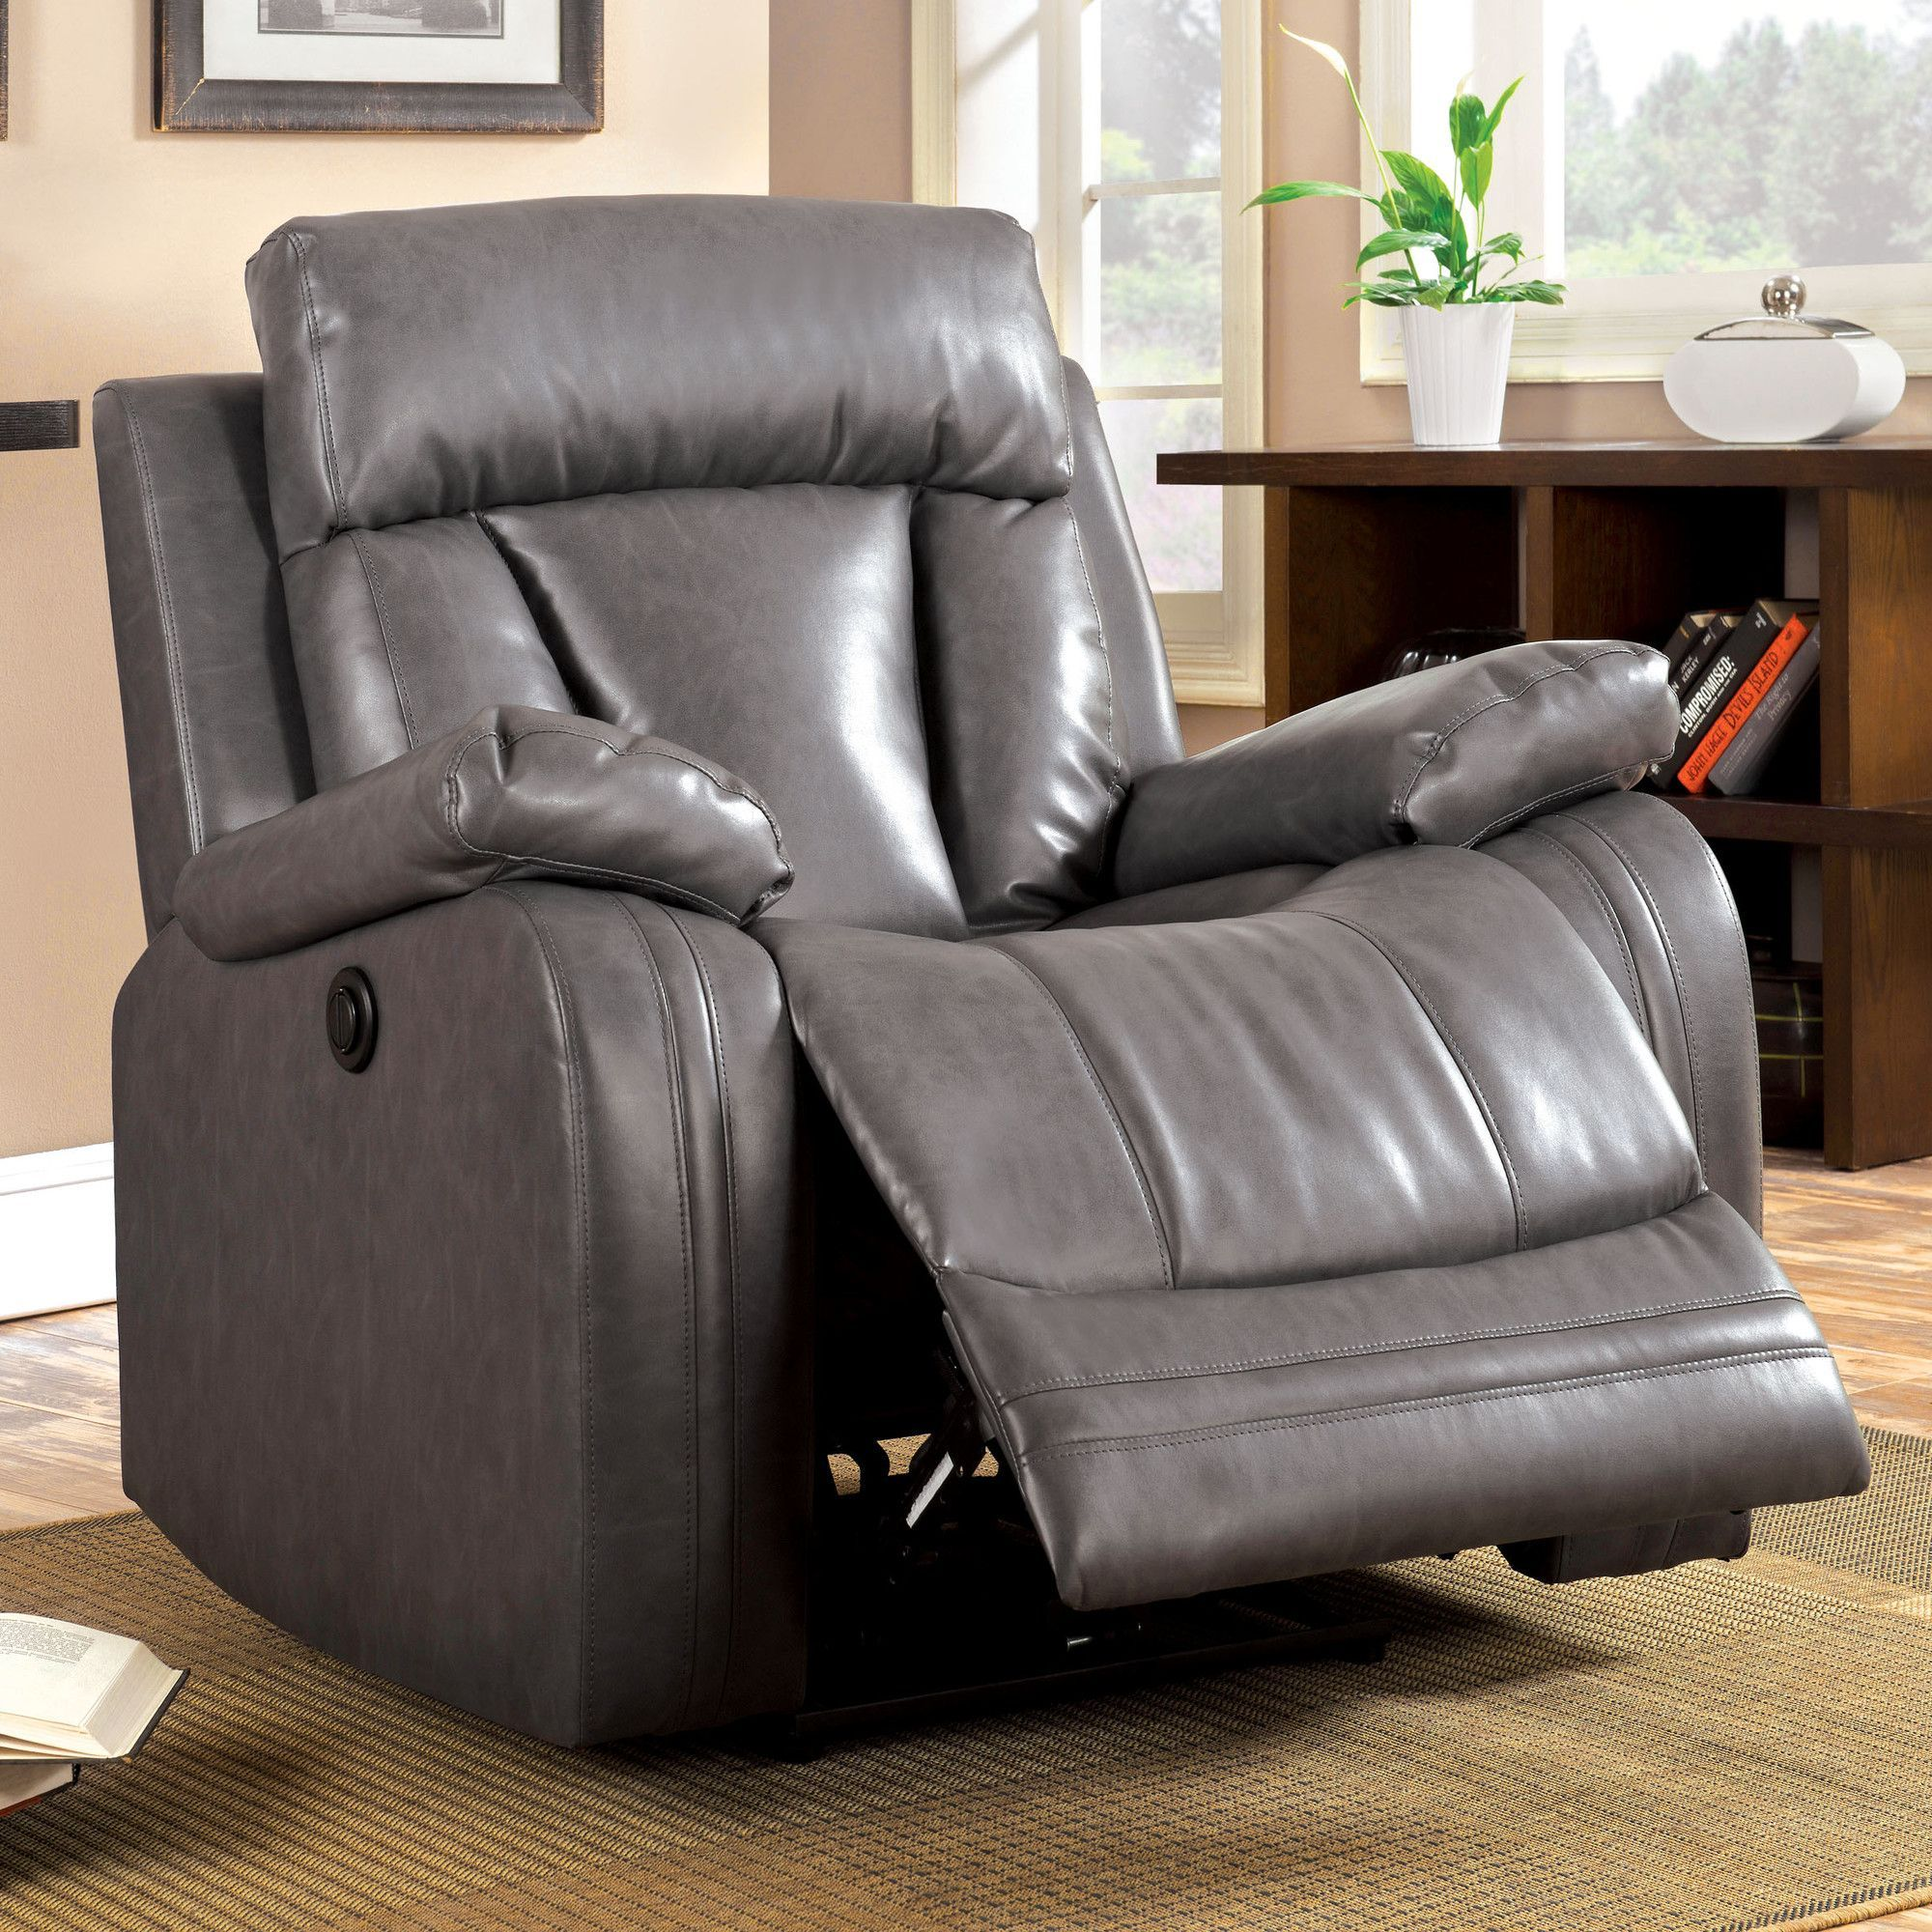 Motor Recliner For Easy Recline